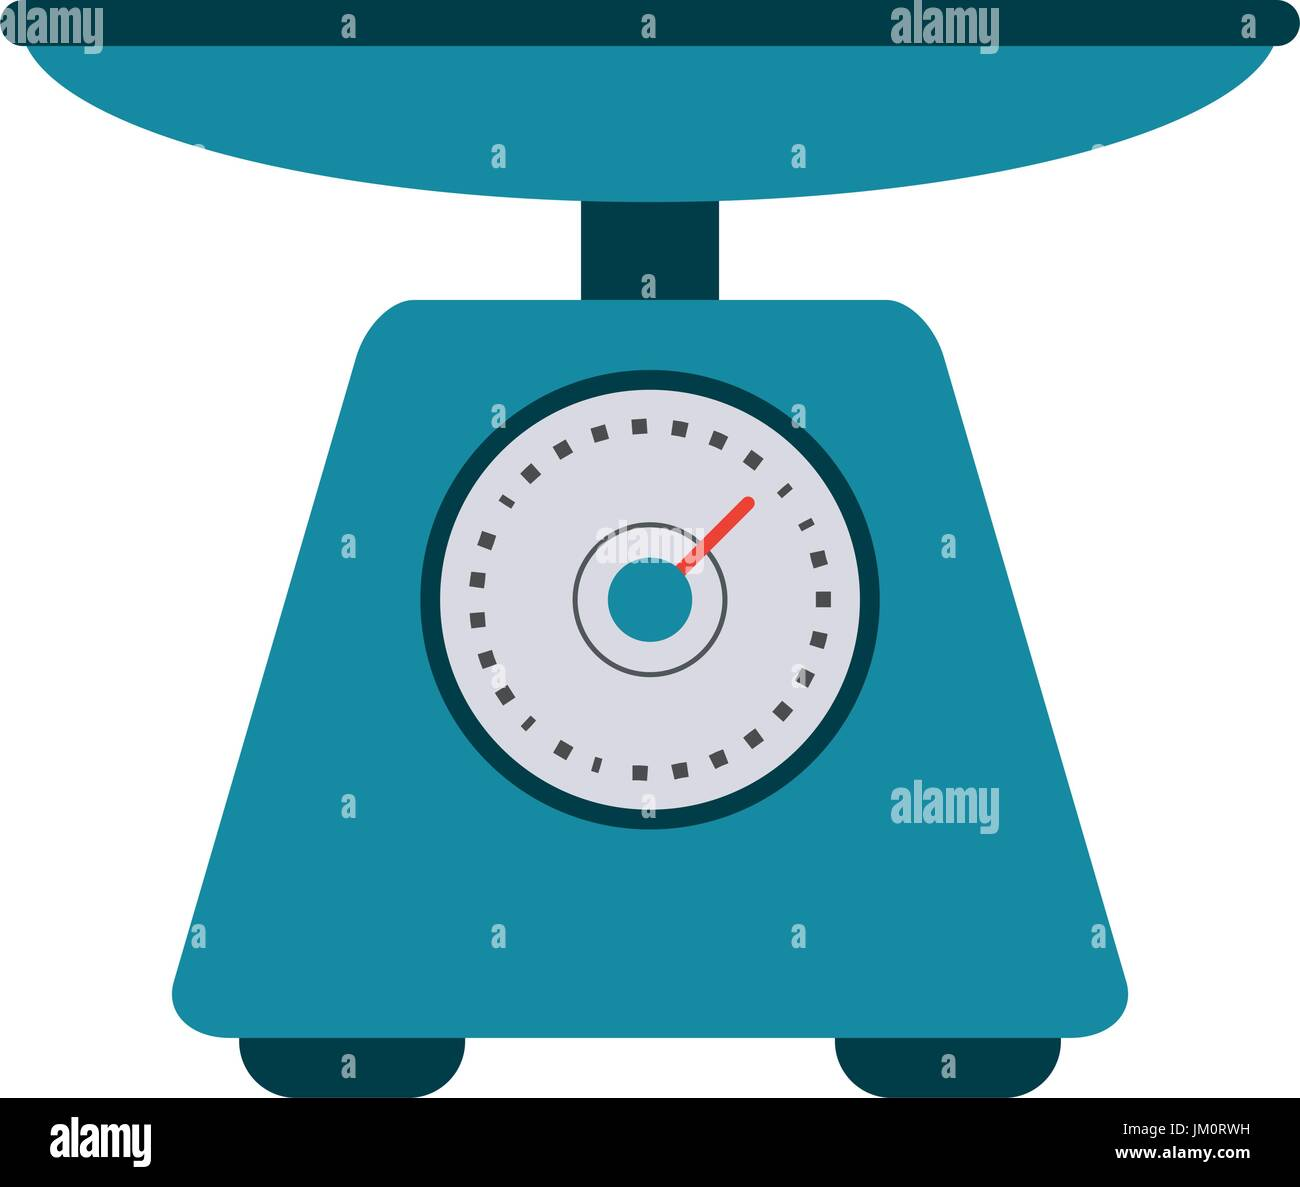 Food Weighing Scales Stock Vector Images - Alamy